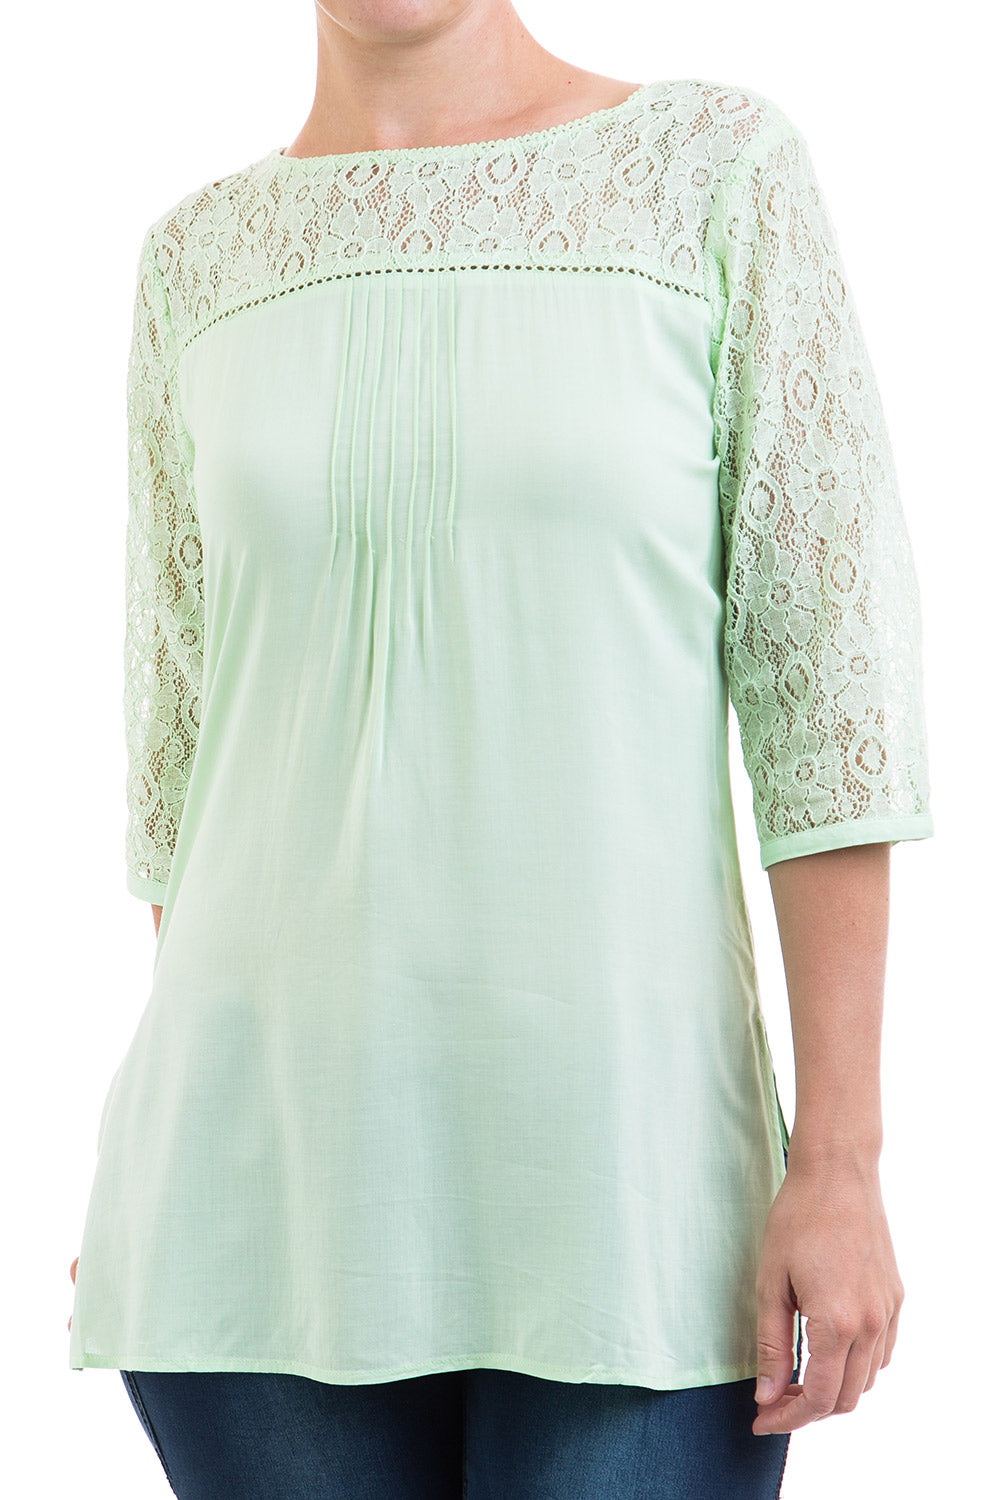 Type 1 Lingering Summer Top